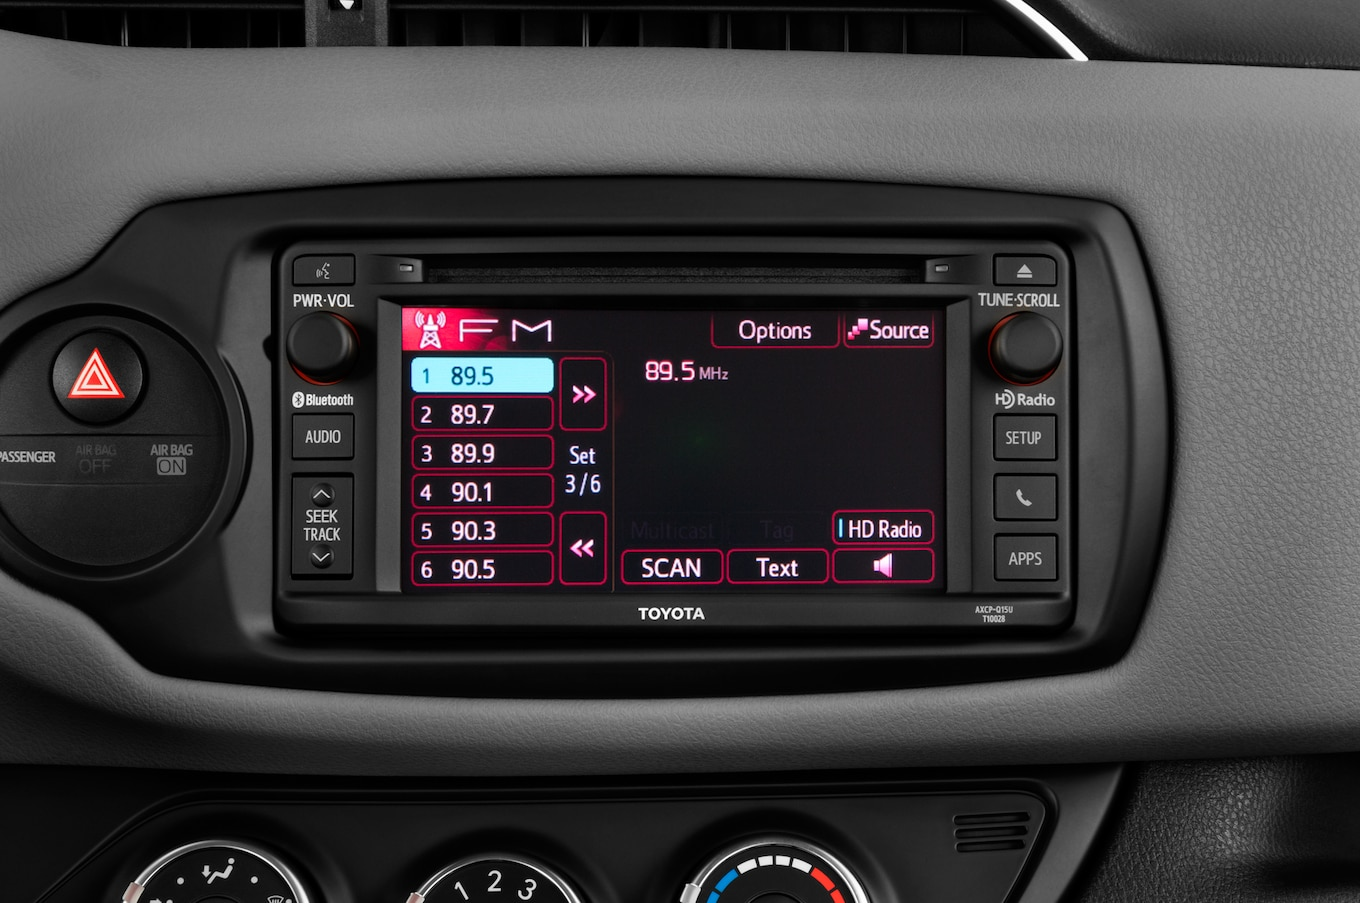 2007 Yaris Stereo Wiring Diagram 2017 Toyota Yaris Reviews Research Yaris Prices Amp Specs